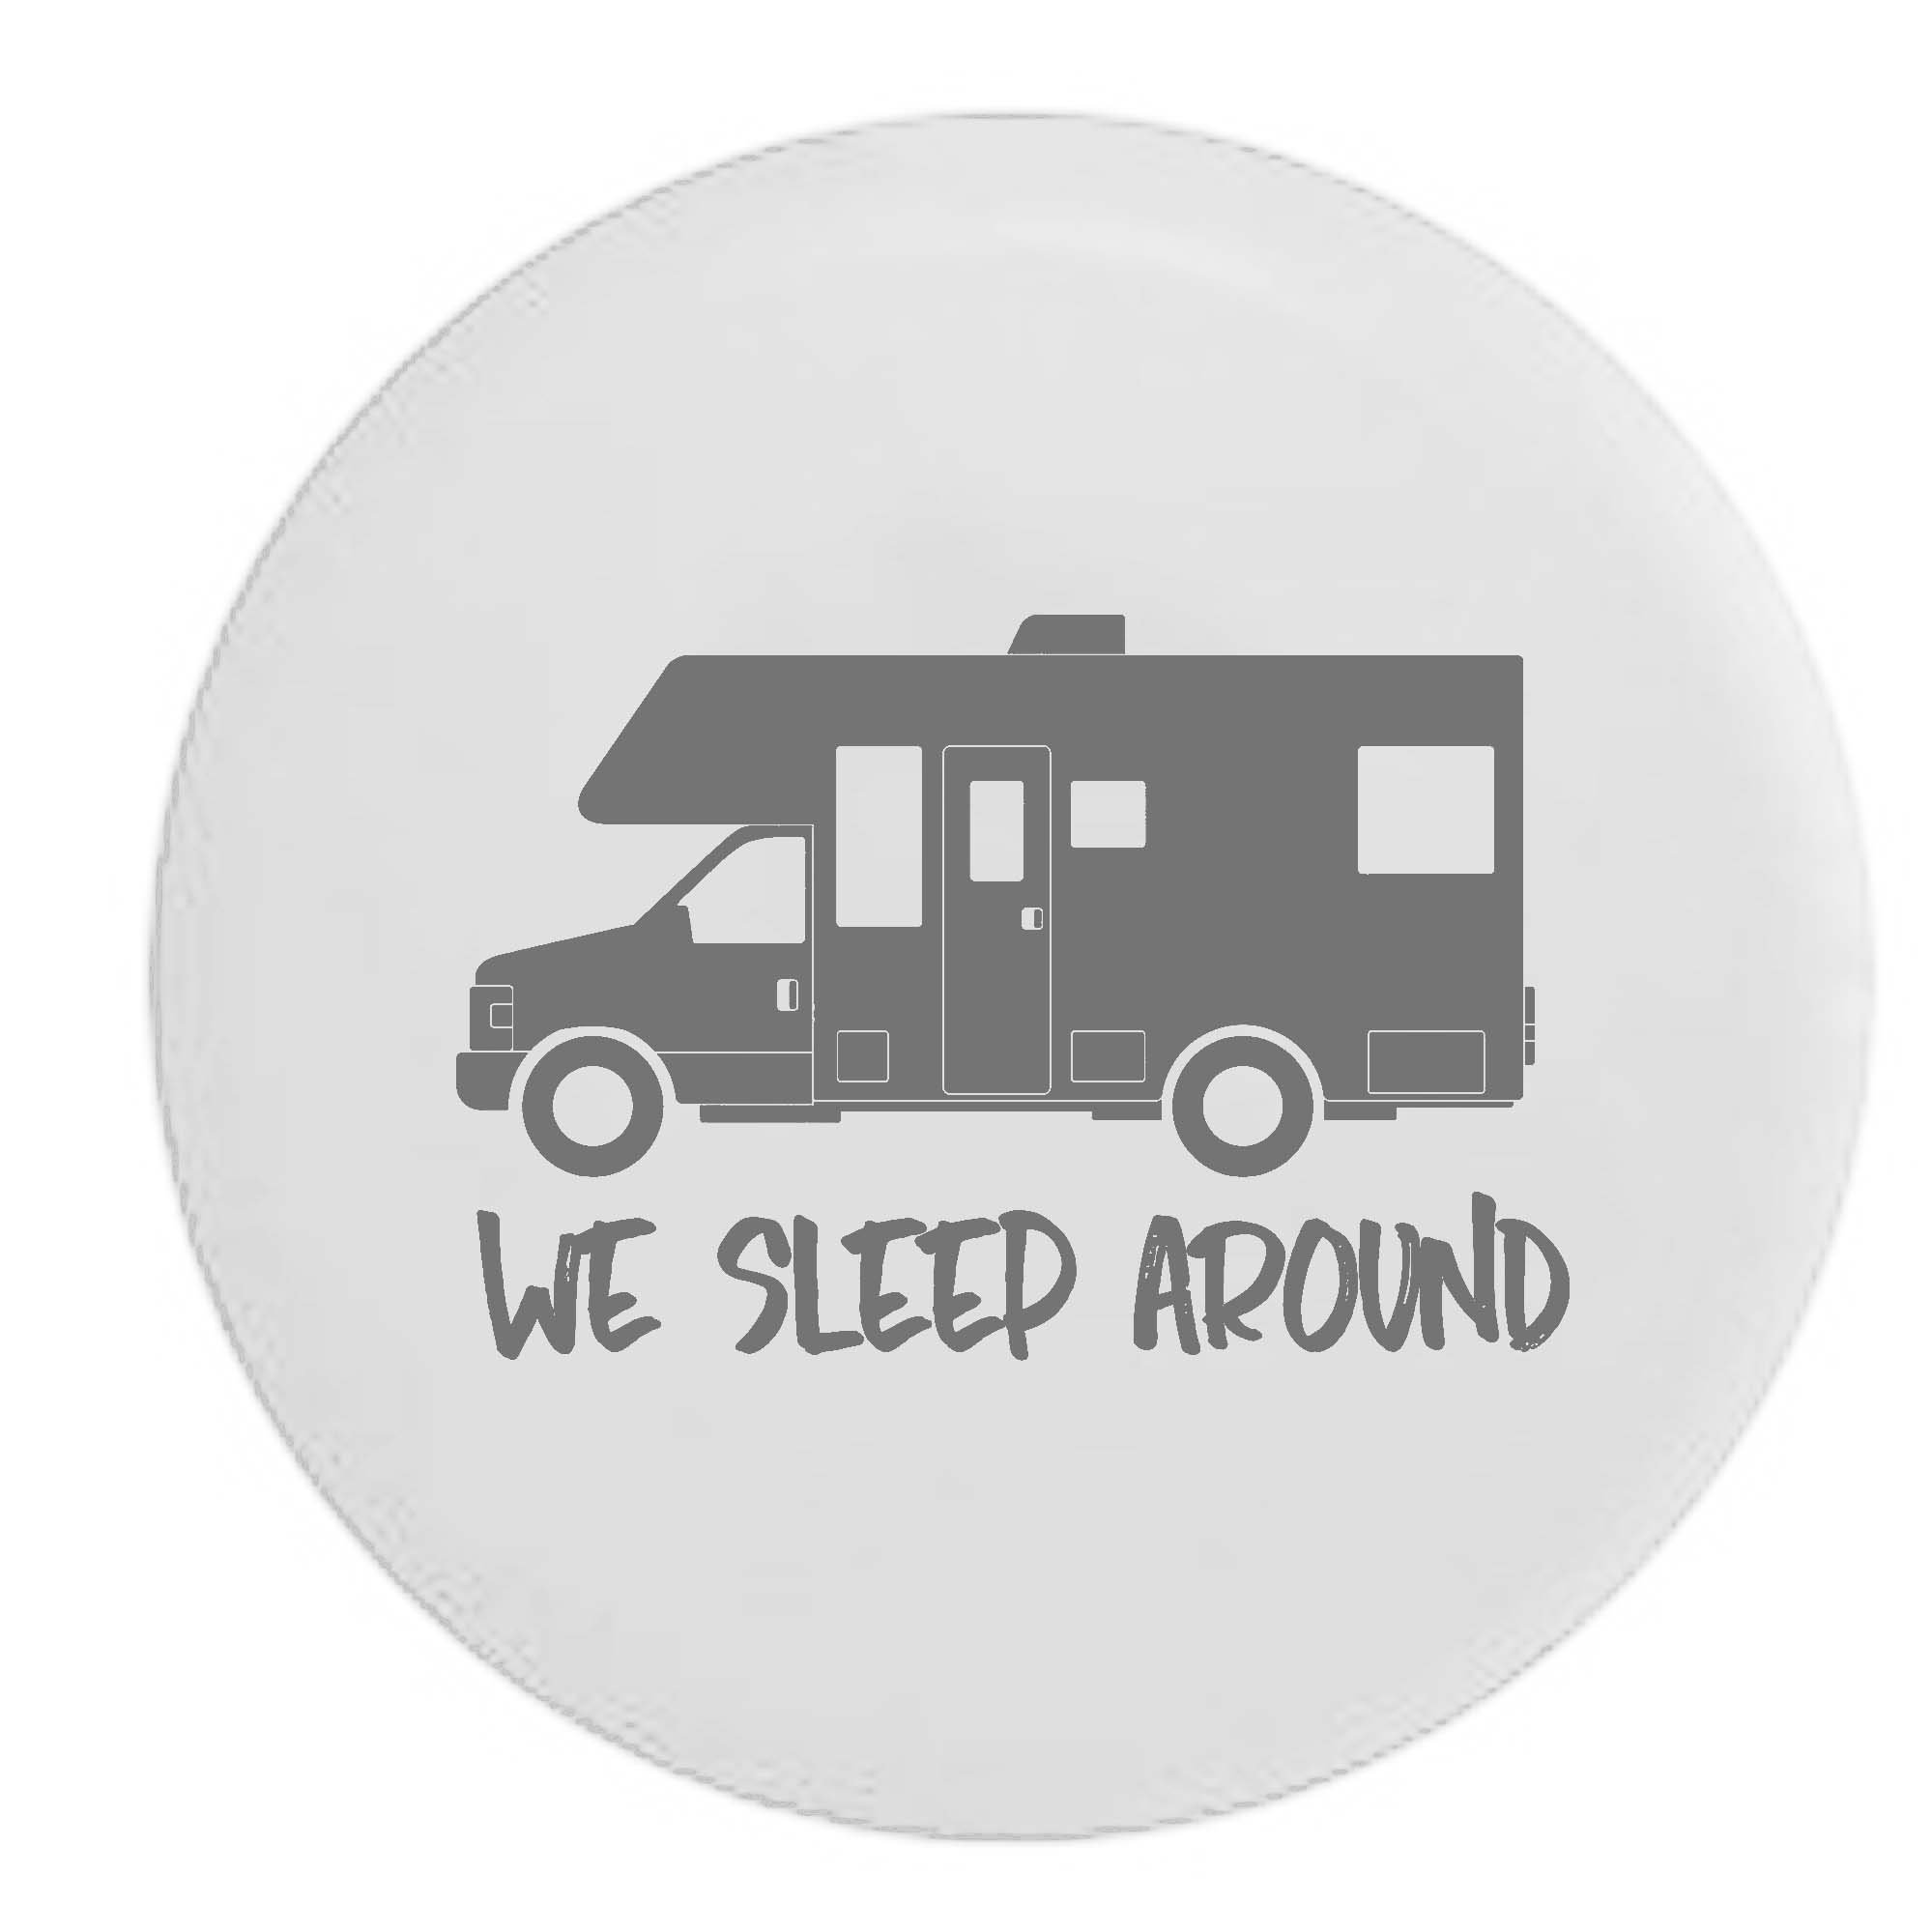 Pike Outdoors We Sleep Around Motorhome RV Camper Spare Tire Cover OEM Vinyl White 33 in by Pike Outdoors